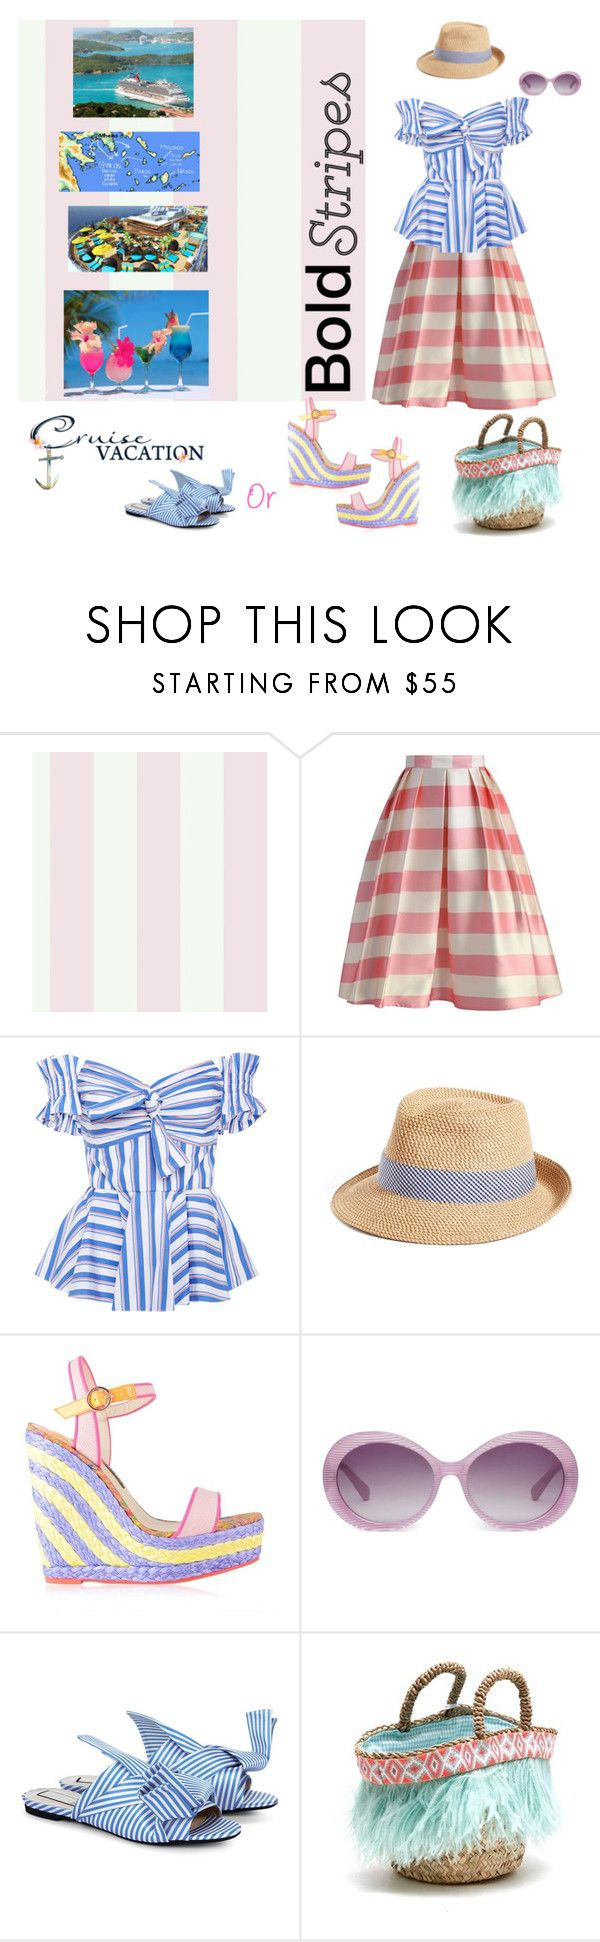 """""""BOLD Stripes...Winter cruise to some where warm"""" by deborah-518 ❤ liked on Polyvore featuring York Wallcoverings, Chicwish, Caroline Constas, Eric Javits, Sophia Webster, Heidi London, N°21, Micaela Spadoni and BoldStripes"""